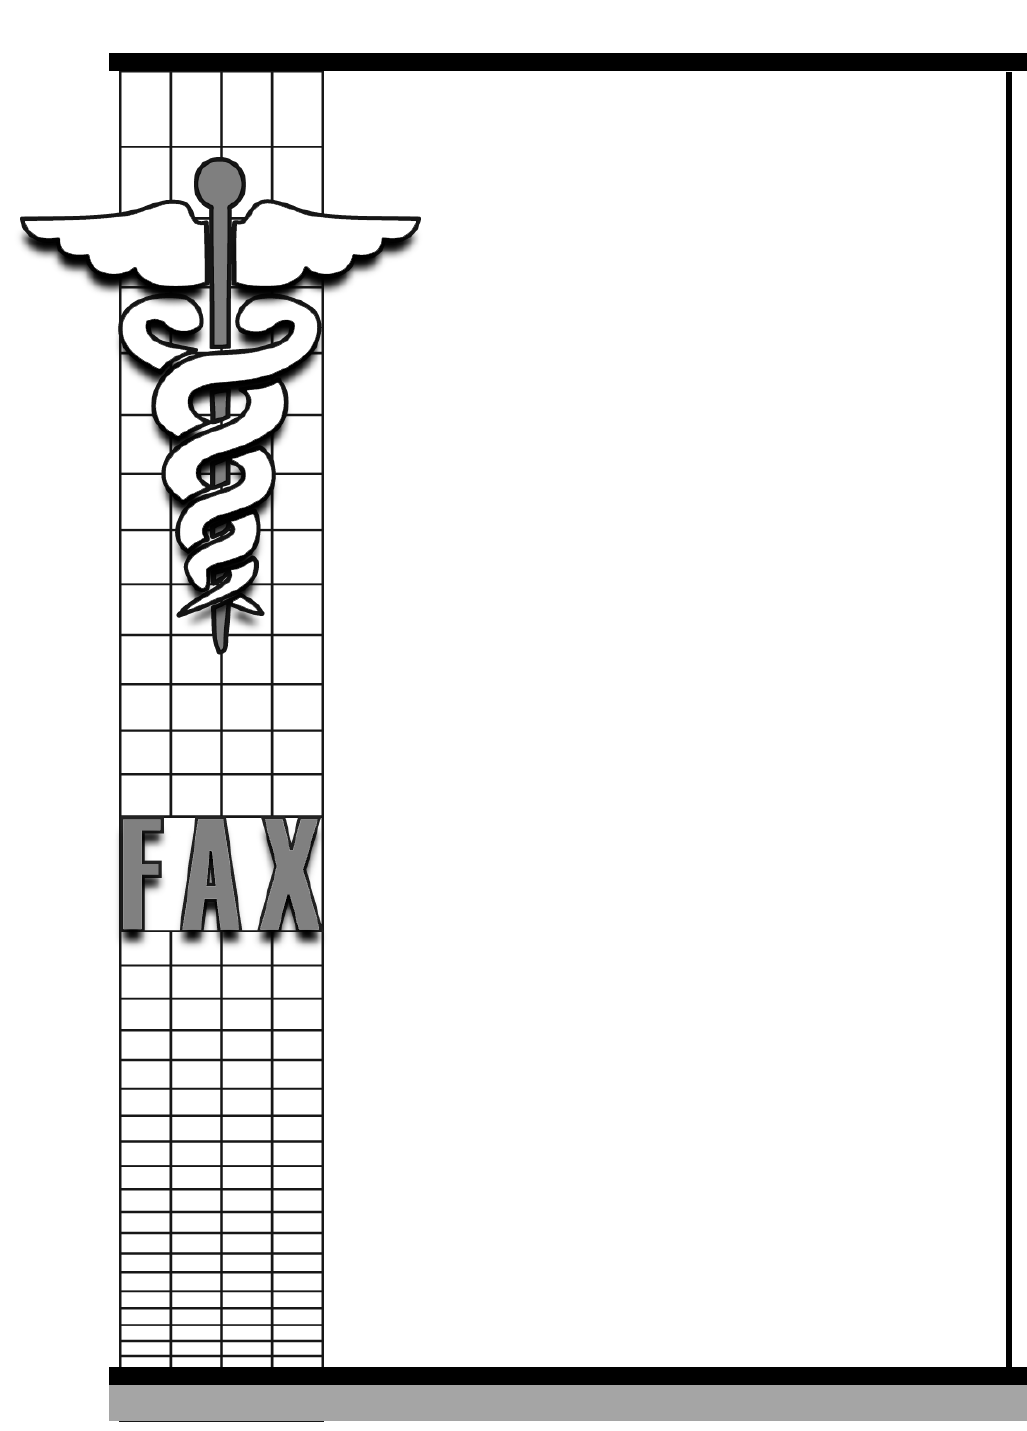 download medical fax cover sheet for free tidytemplates